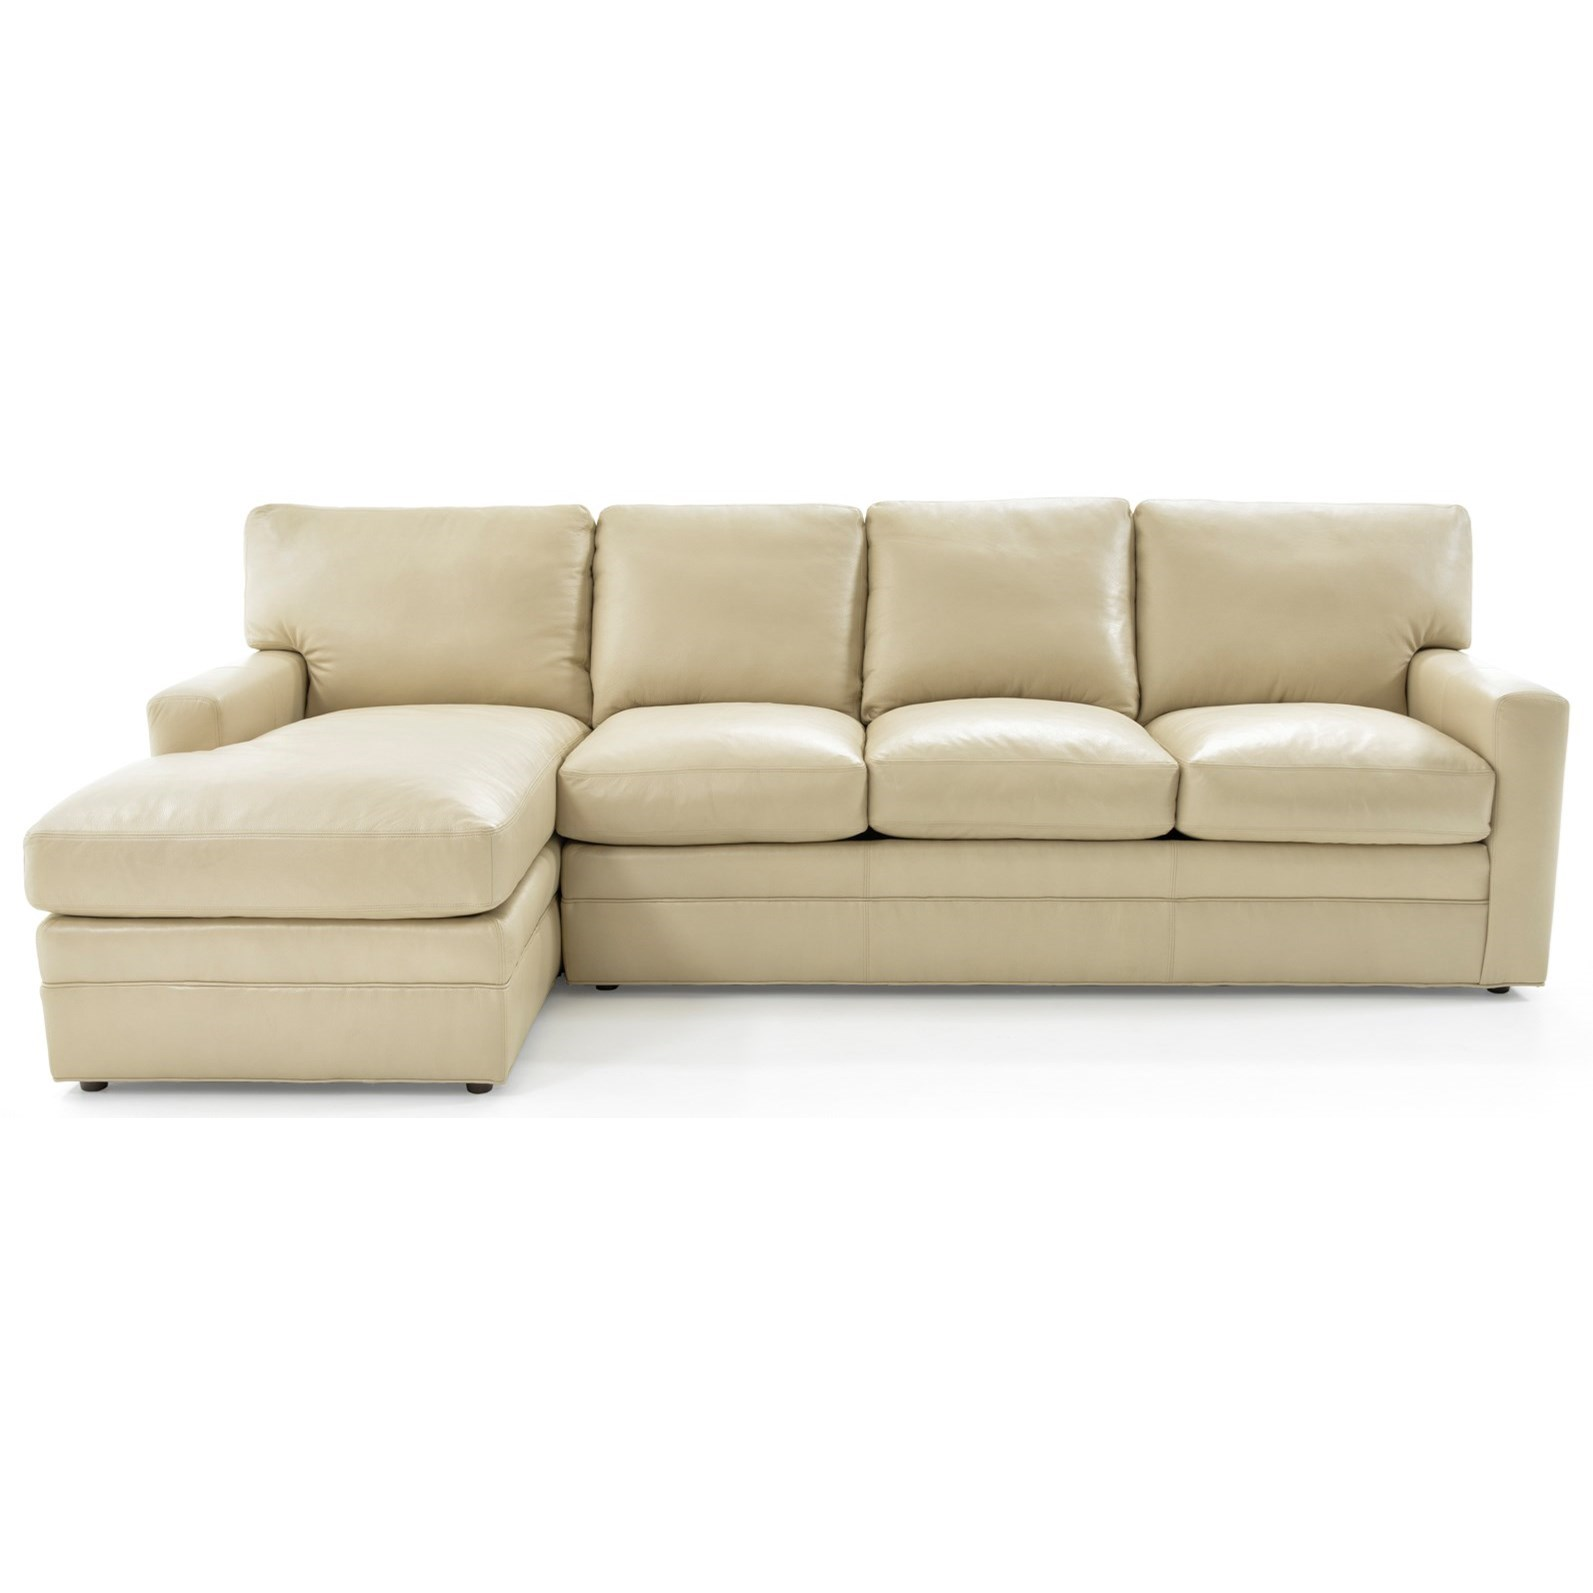 442 2 Pc L-Shape Sectional Sofa w/ LAF Chaise by Whittemore-Sherrill at Baer's Furniture